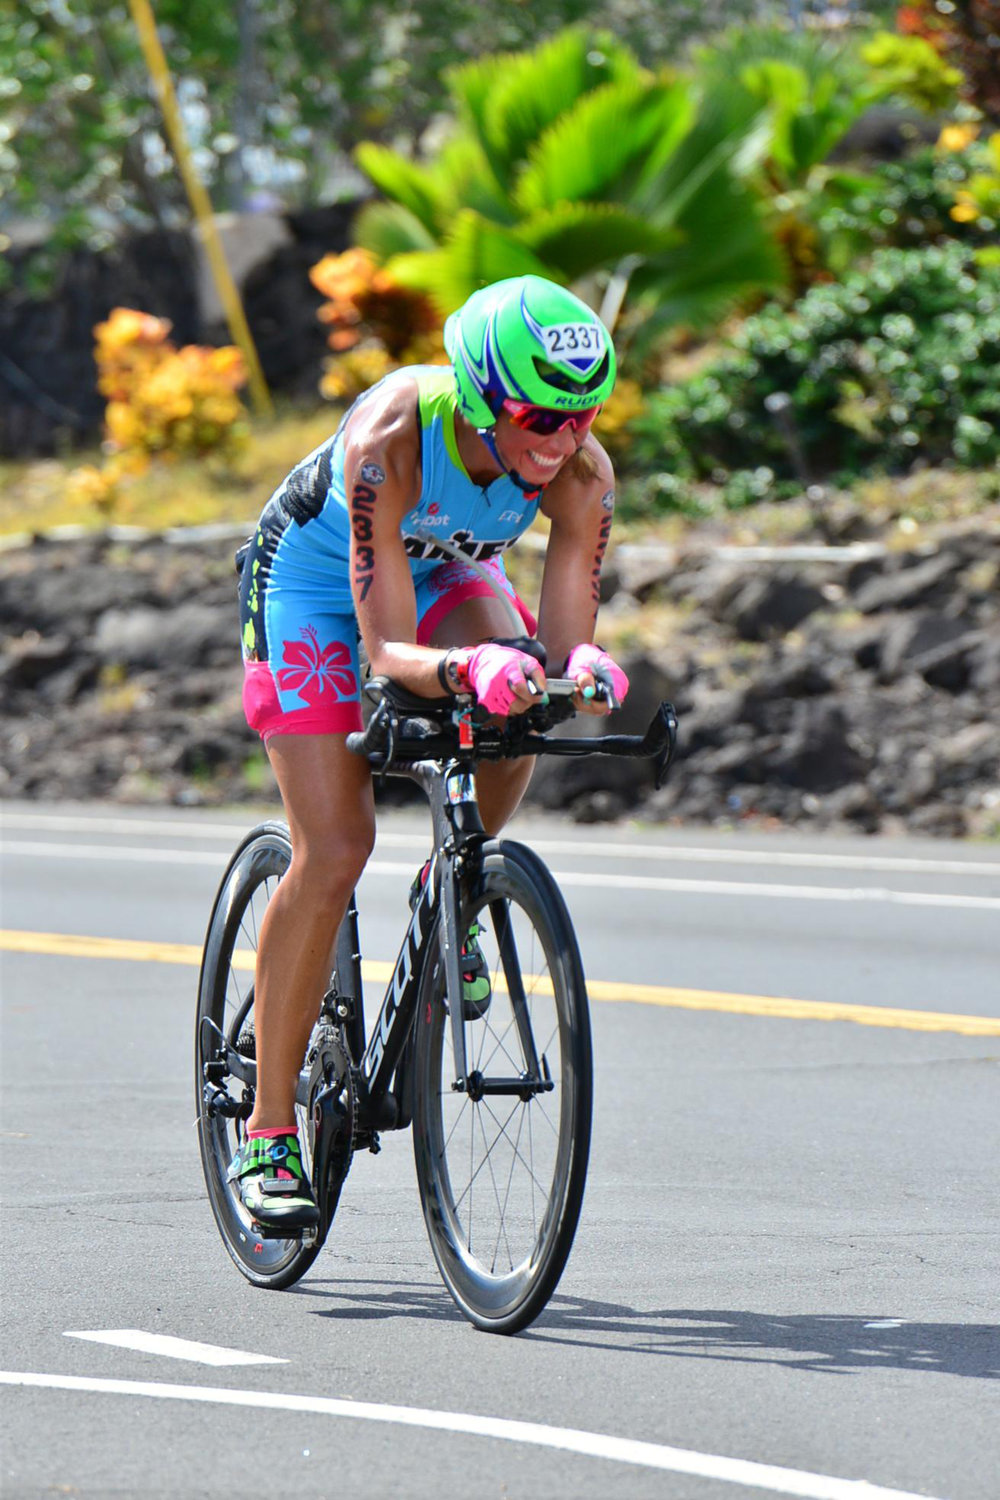 Coach_Terry_Wilson_Pursuit_of_The_Perfect_Race_IRONMAN_World_Championship_Kona_Elizabeth_James_1.JPG